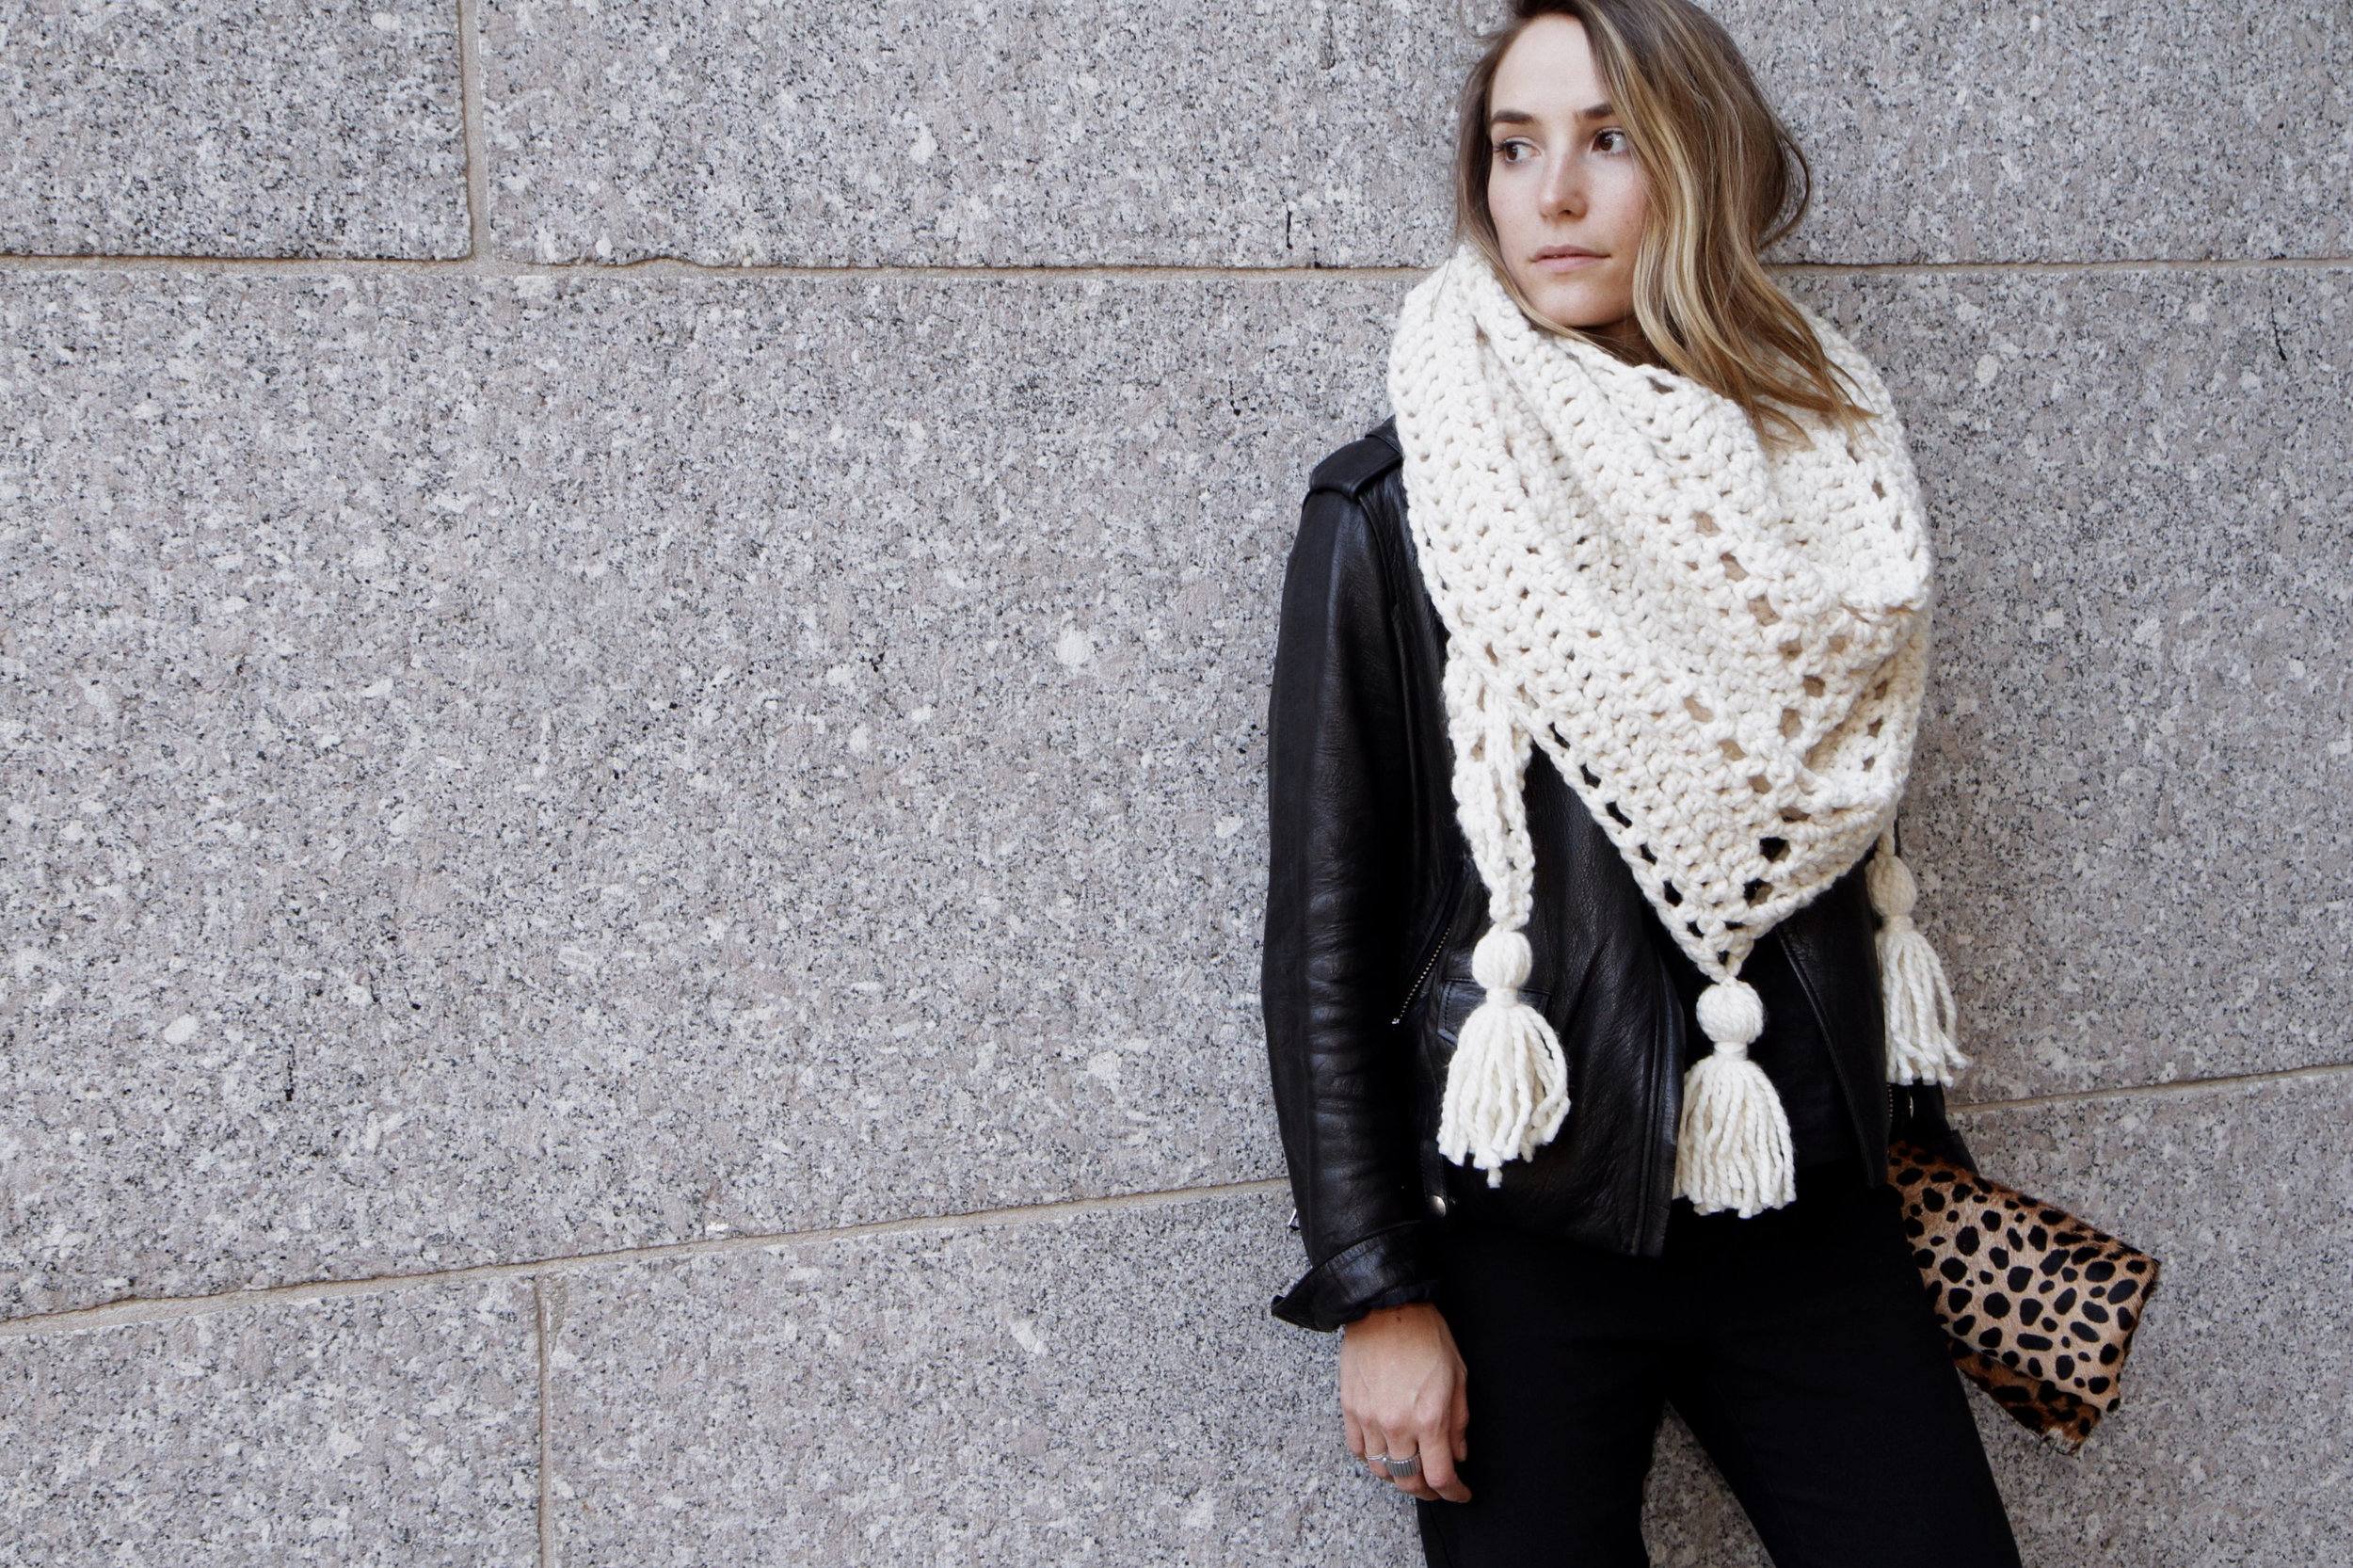 Louisa Wrap crochet pattern by Two of Wands // Triangle Scarf Tassels Boho Oversized Chunky Shawl